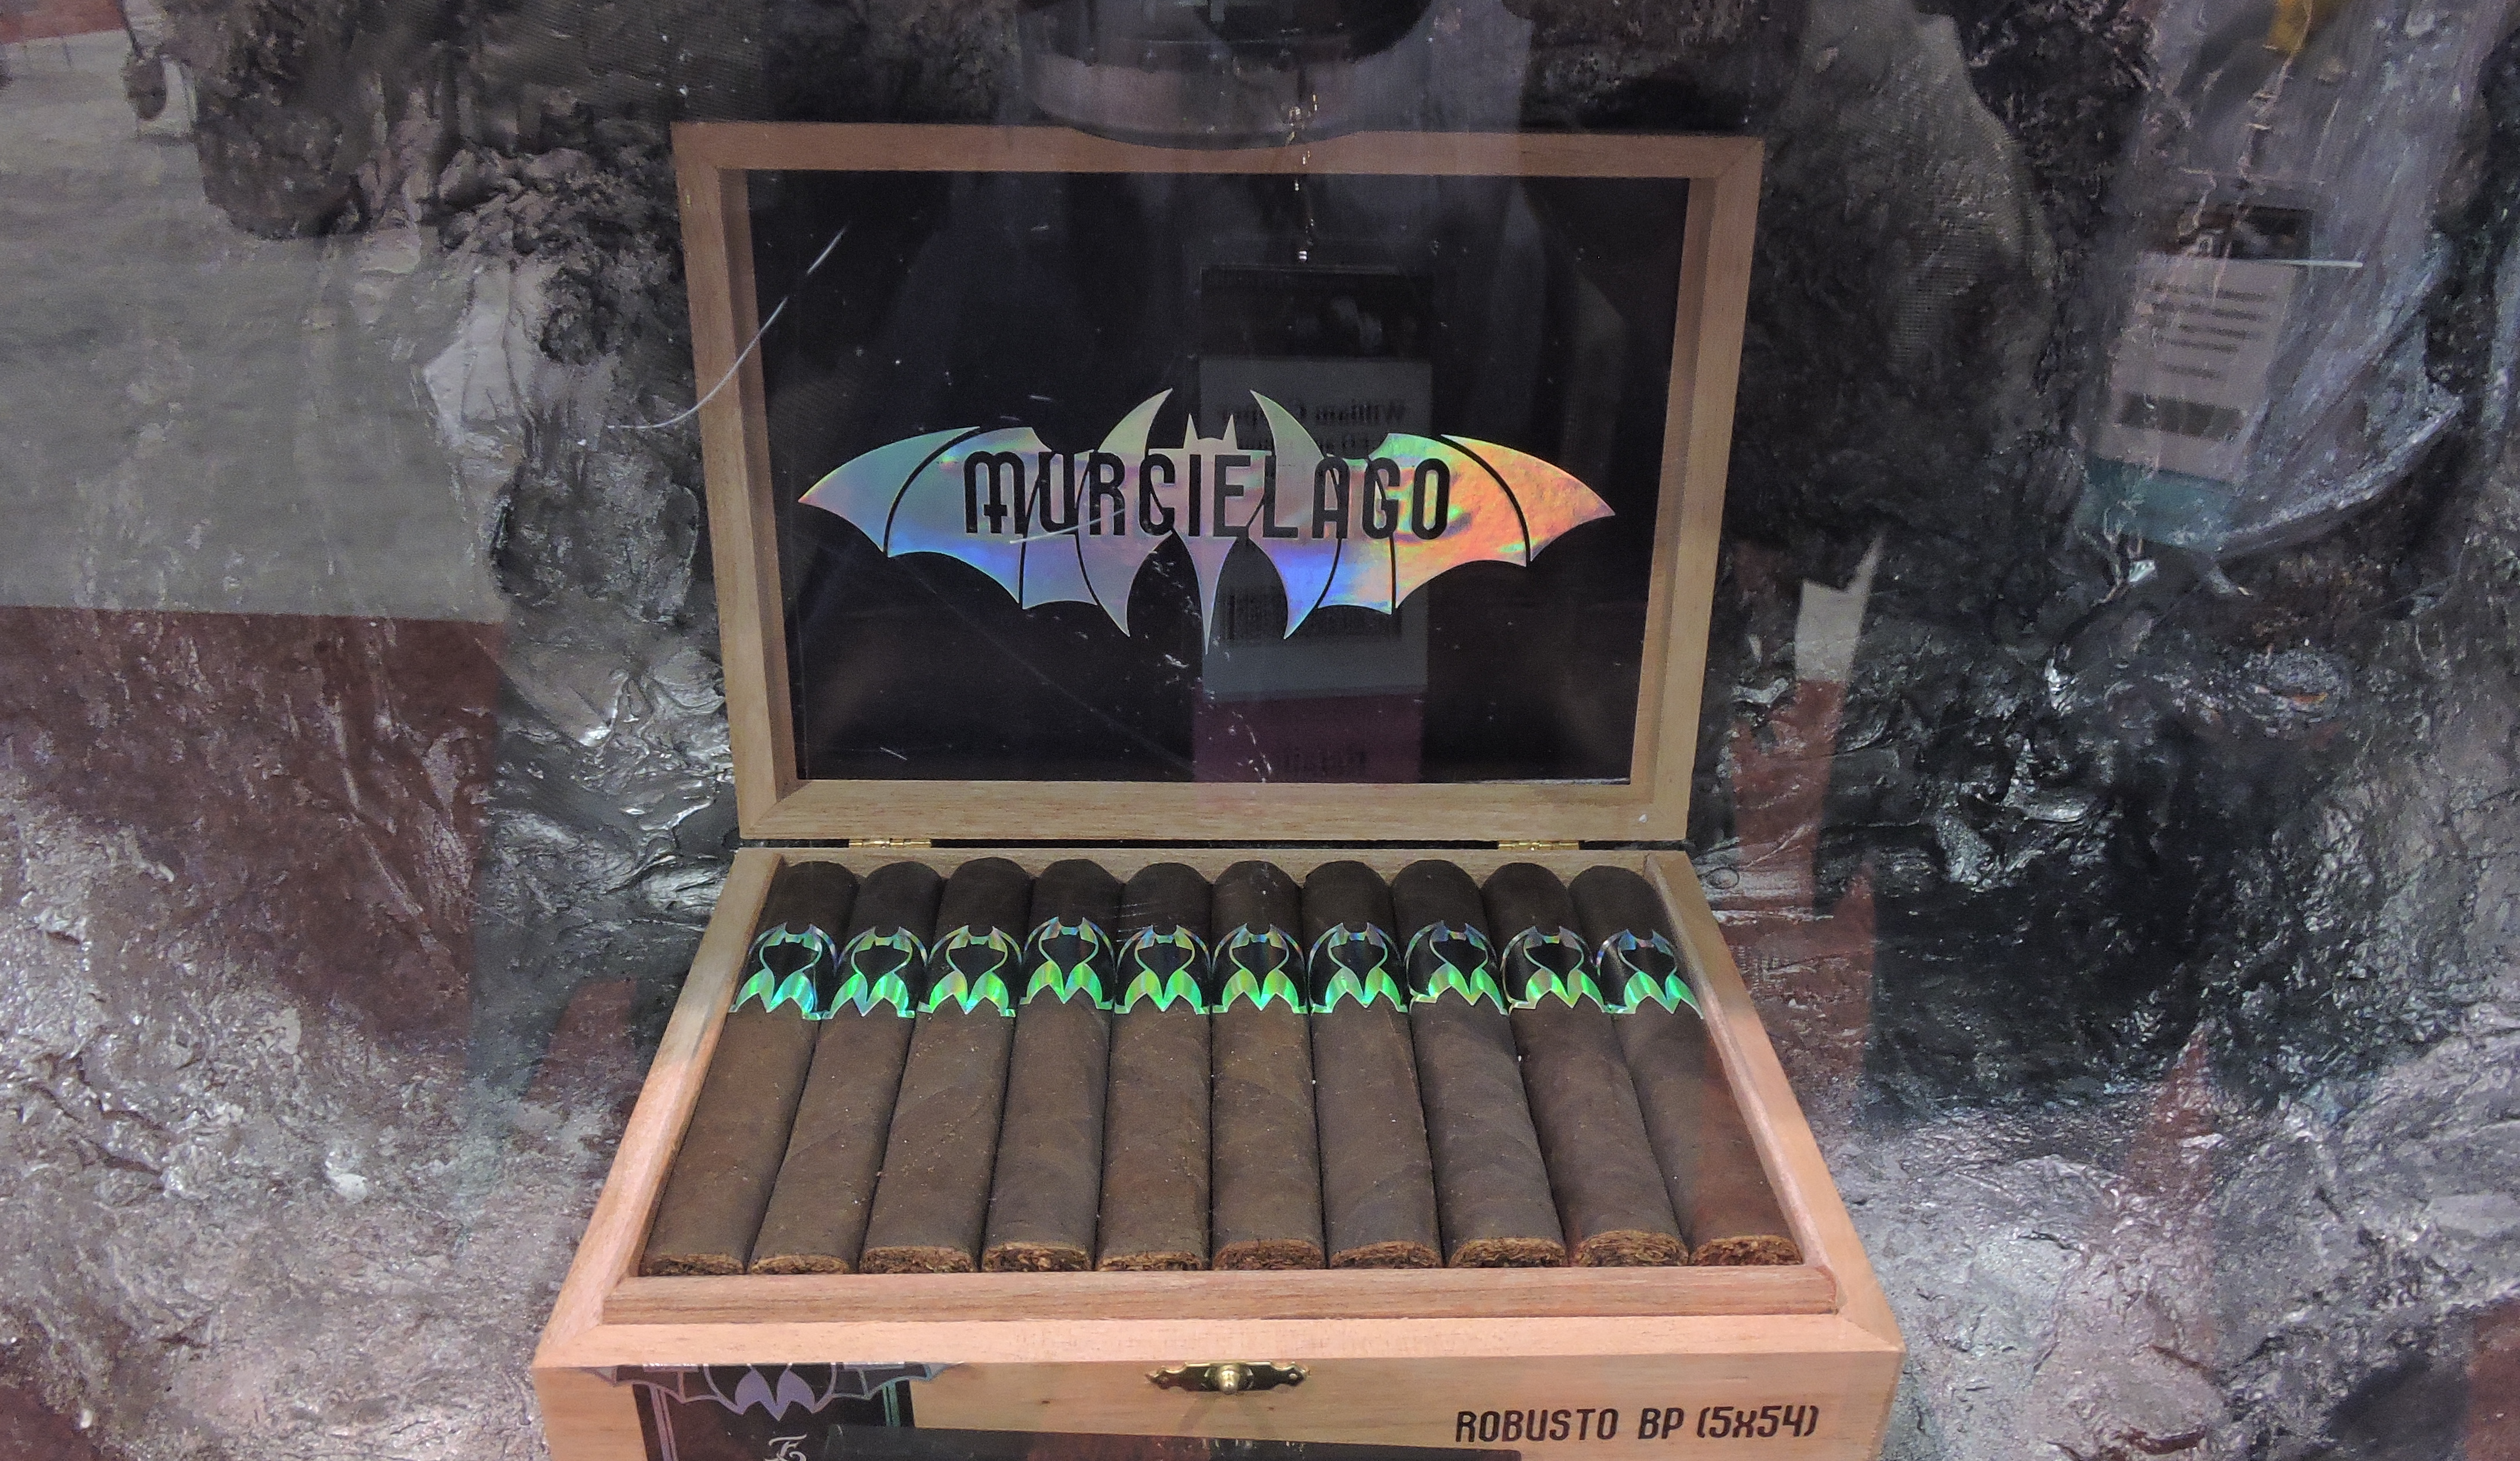 Feature Story: Spotlight on Espinosa Cigars at the 2017 IPCPR Trade Show